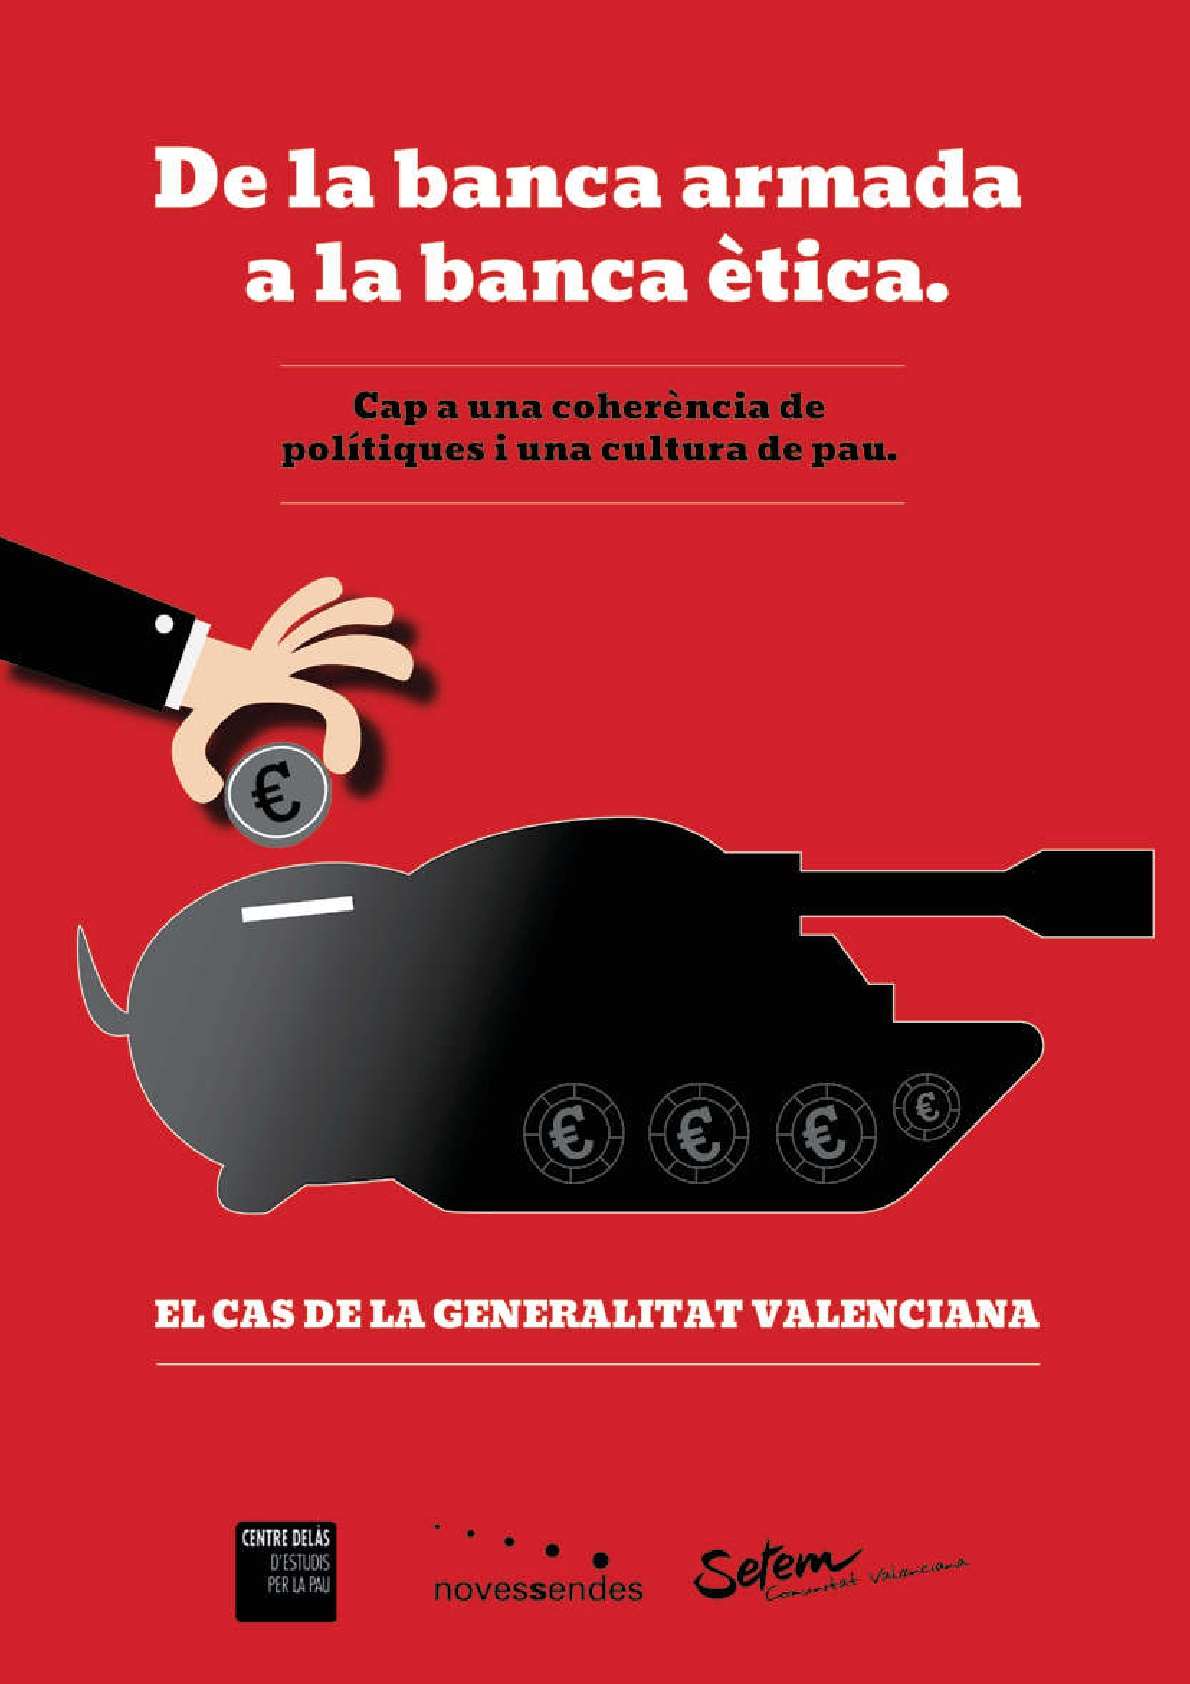 """Report by the Delàs Centre, Fundació Novessendes and Setem Comunitat Valenciana: """"From Armed Banking to Ethical Banking. Towards policy coherence and a culture of peace. The case of the Generalitat Valenciana"""""""